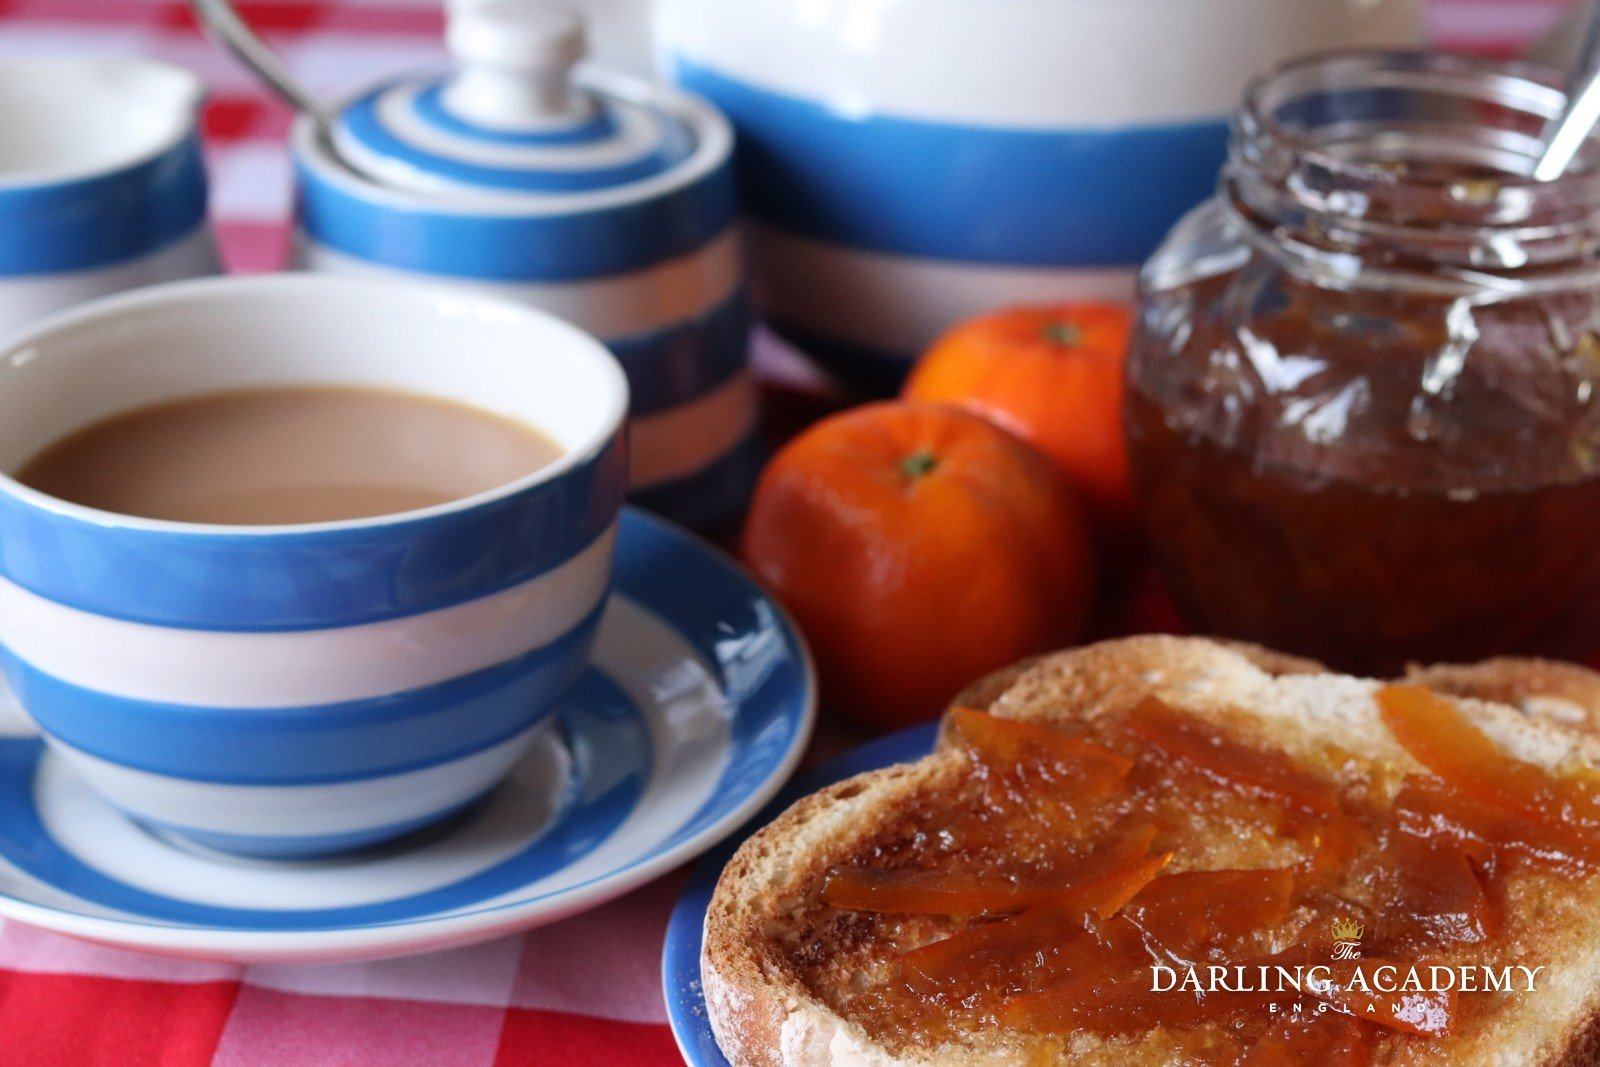 the-darling-academy-marmalade-recipe.jpg